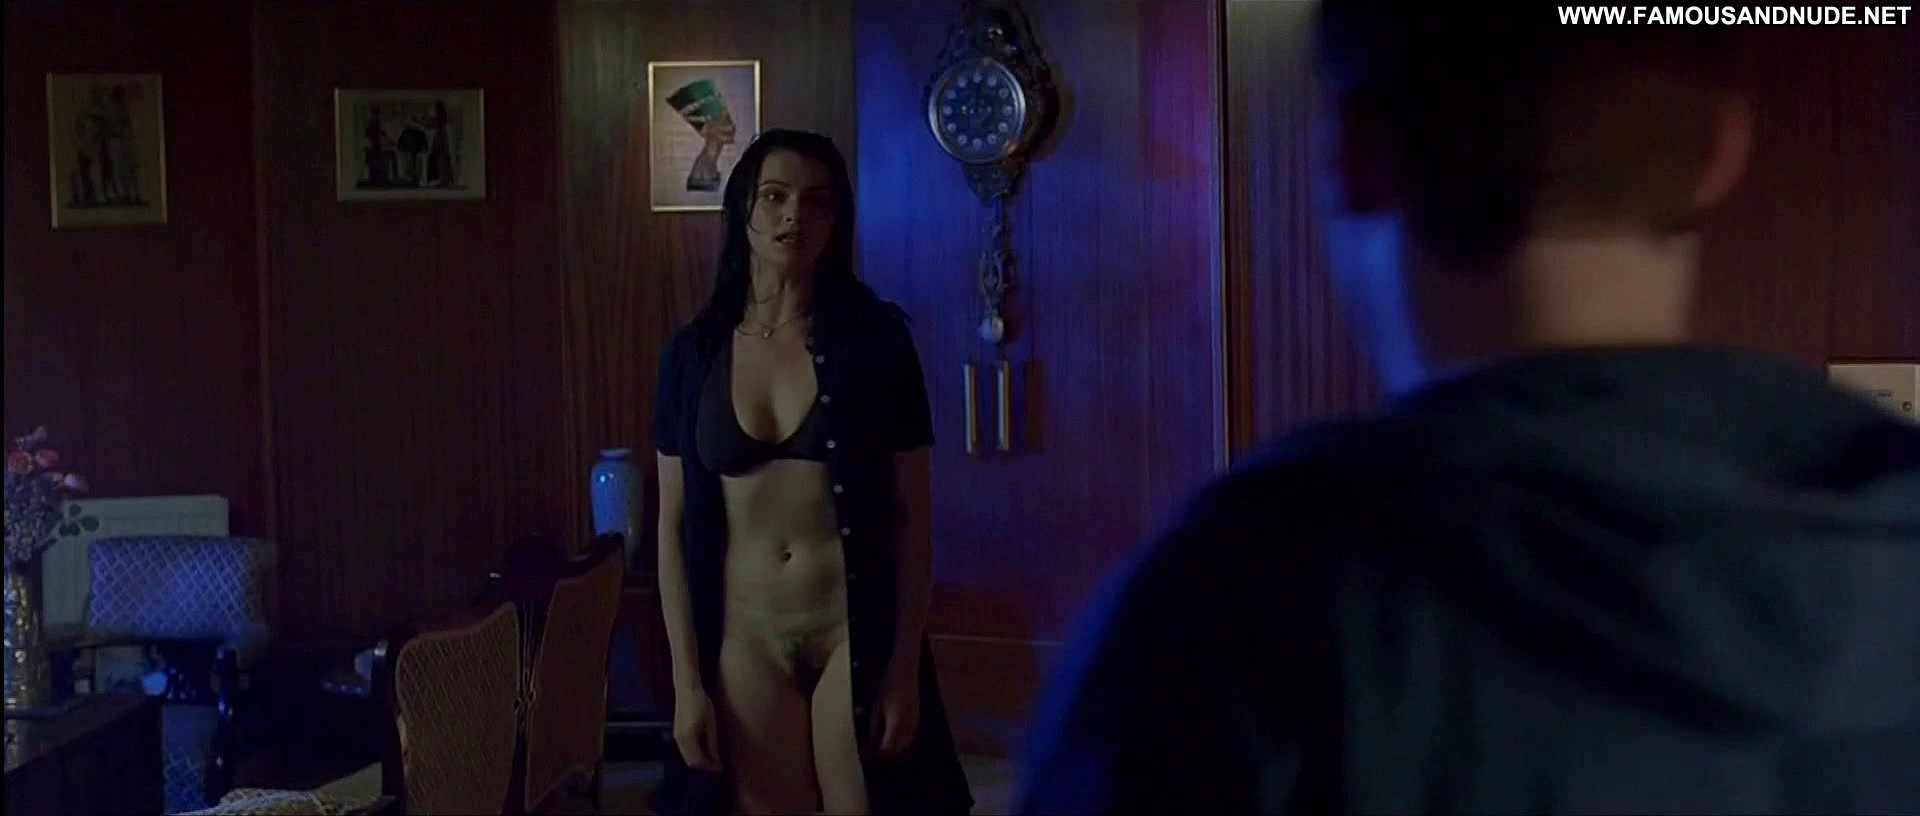 Rather Rachel weisz i want you nude are